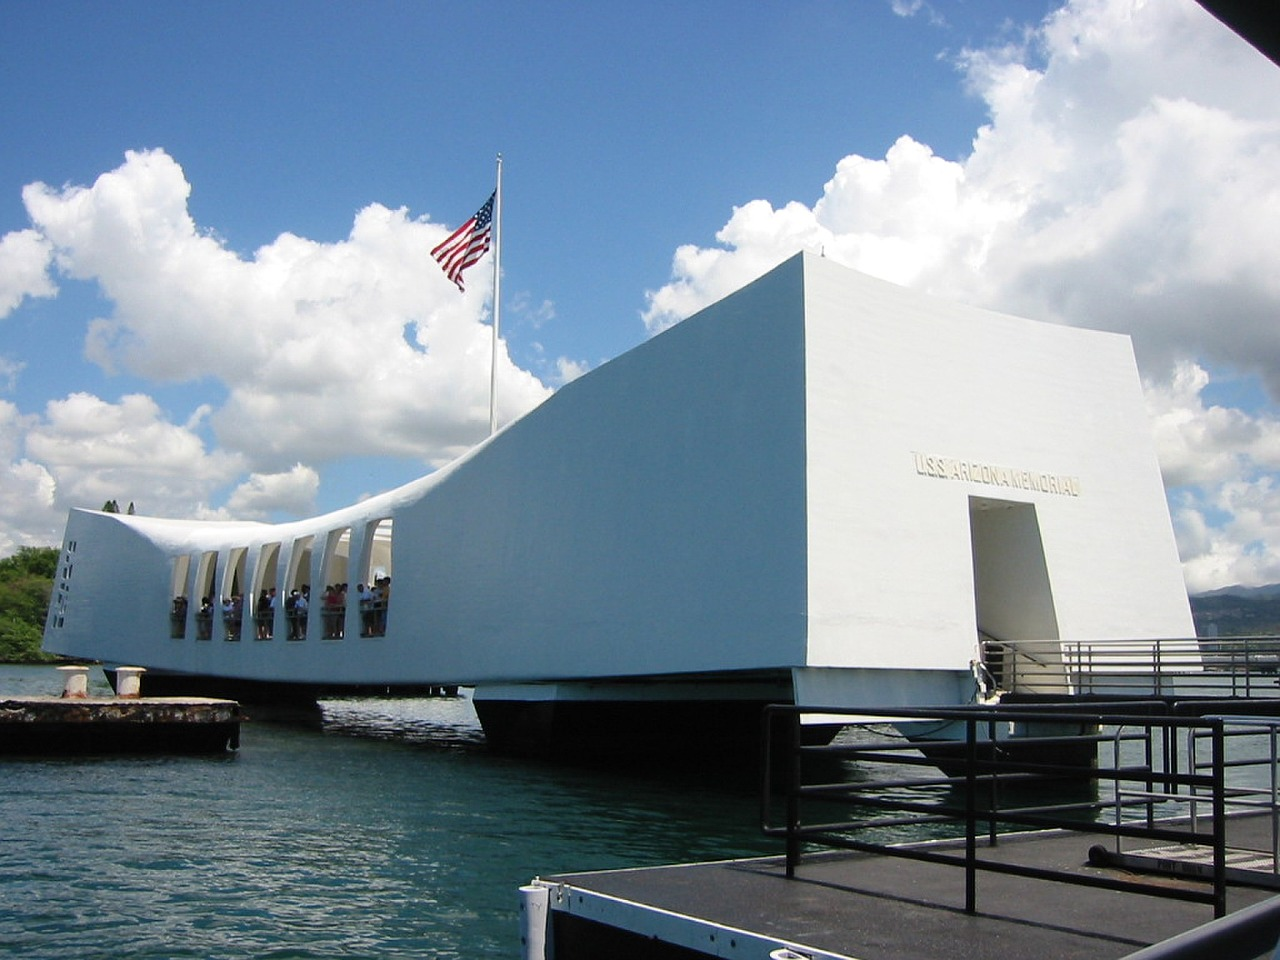 [1] pearl-harbor-oahu-hawaii-memorial